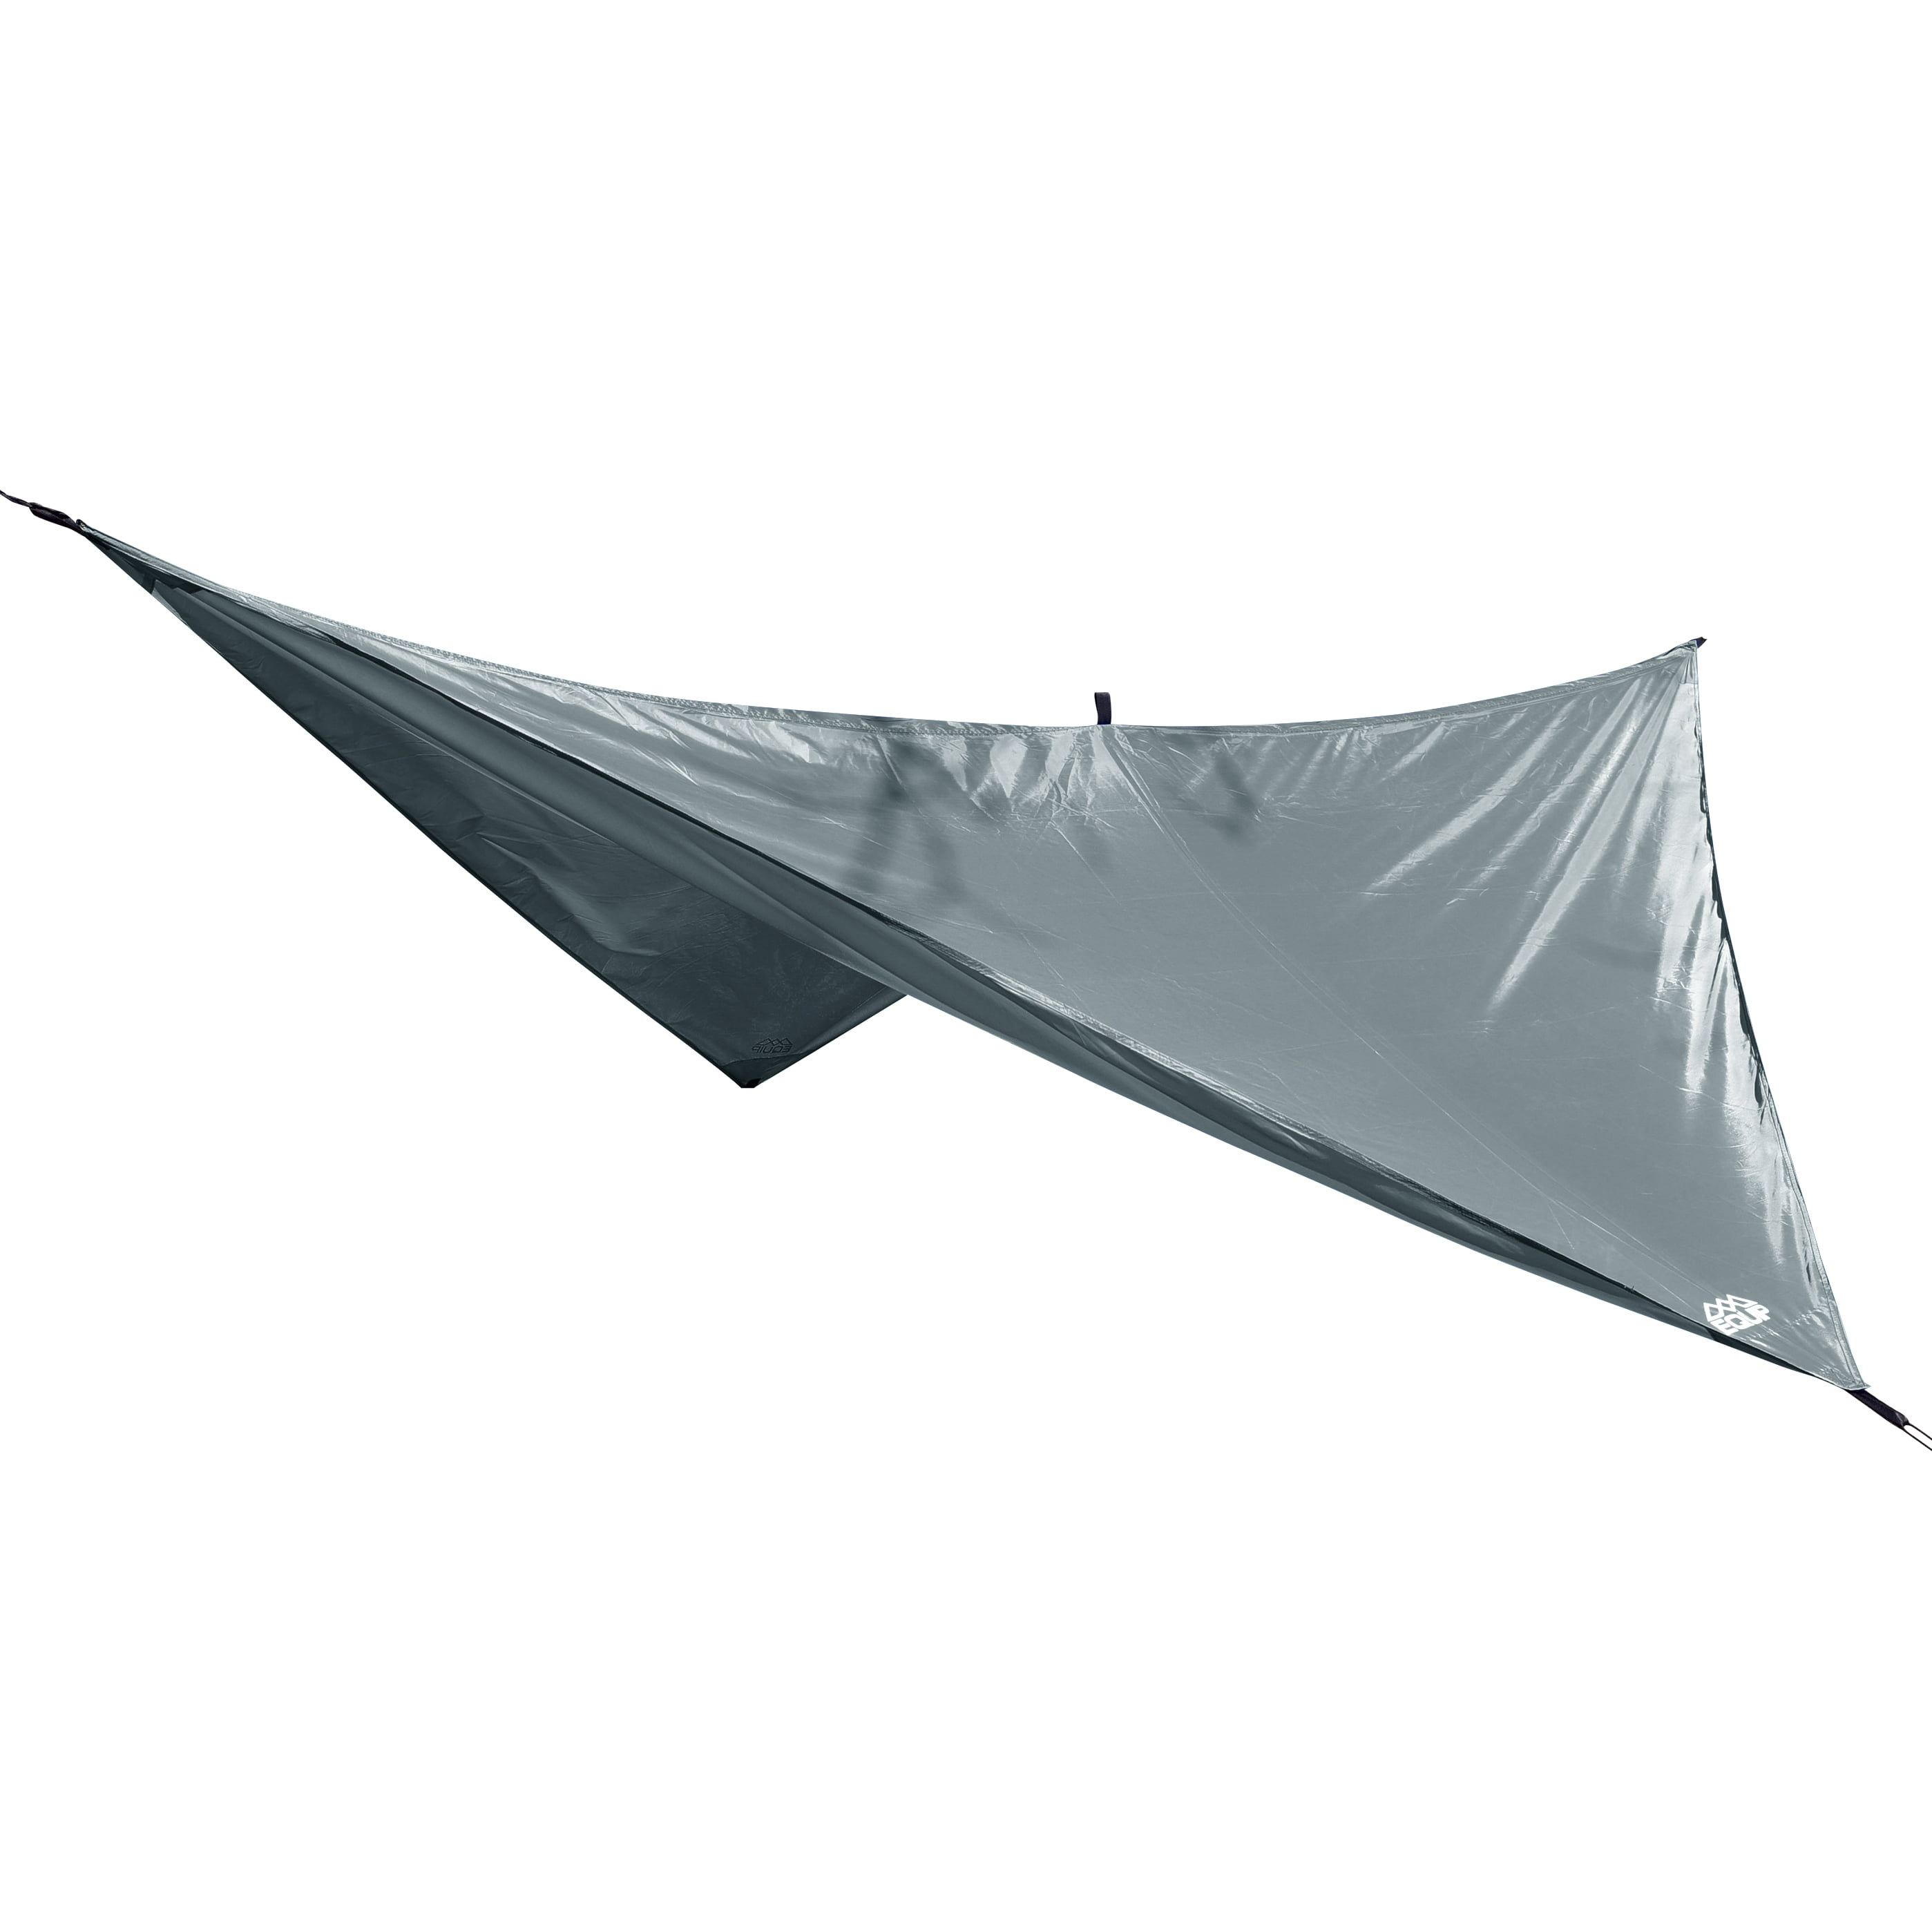 Equip Hammock Rainfly Camping with Guylines and Stakes, Grey by Generic